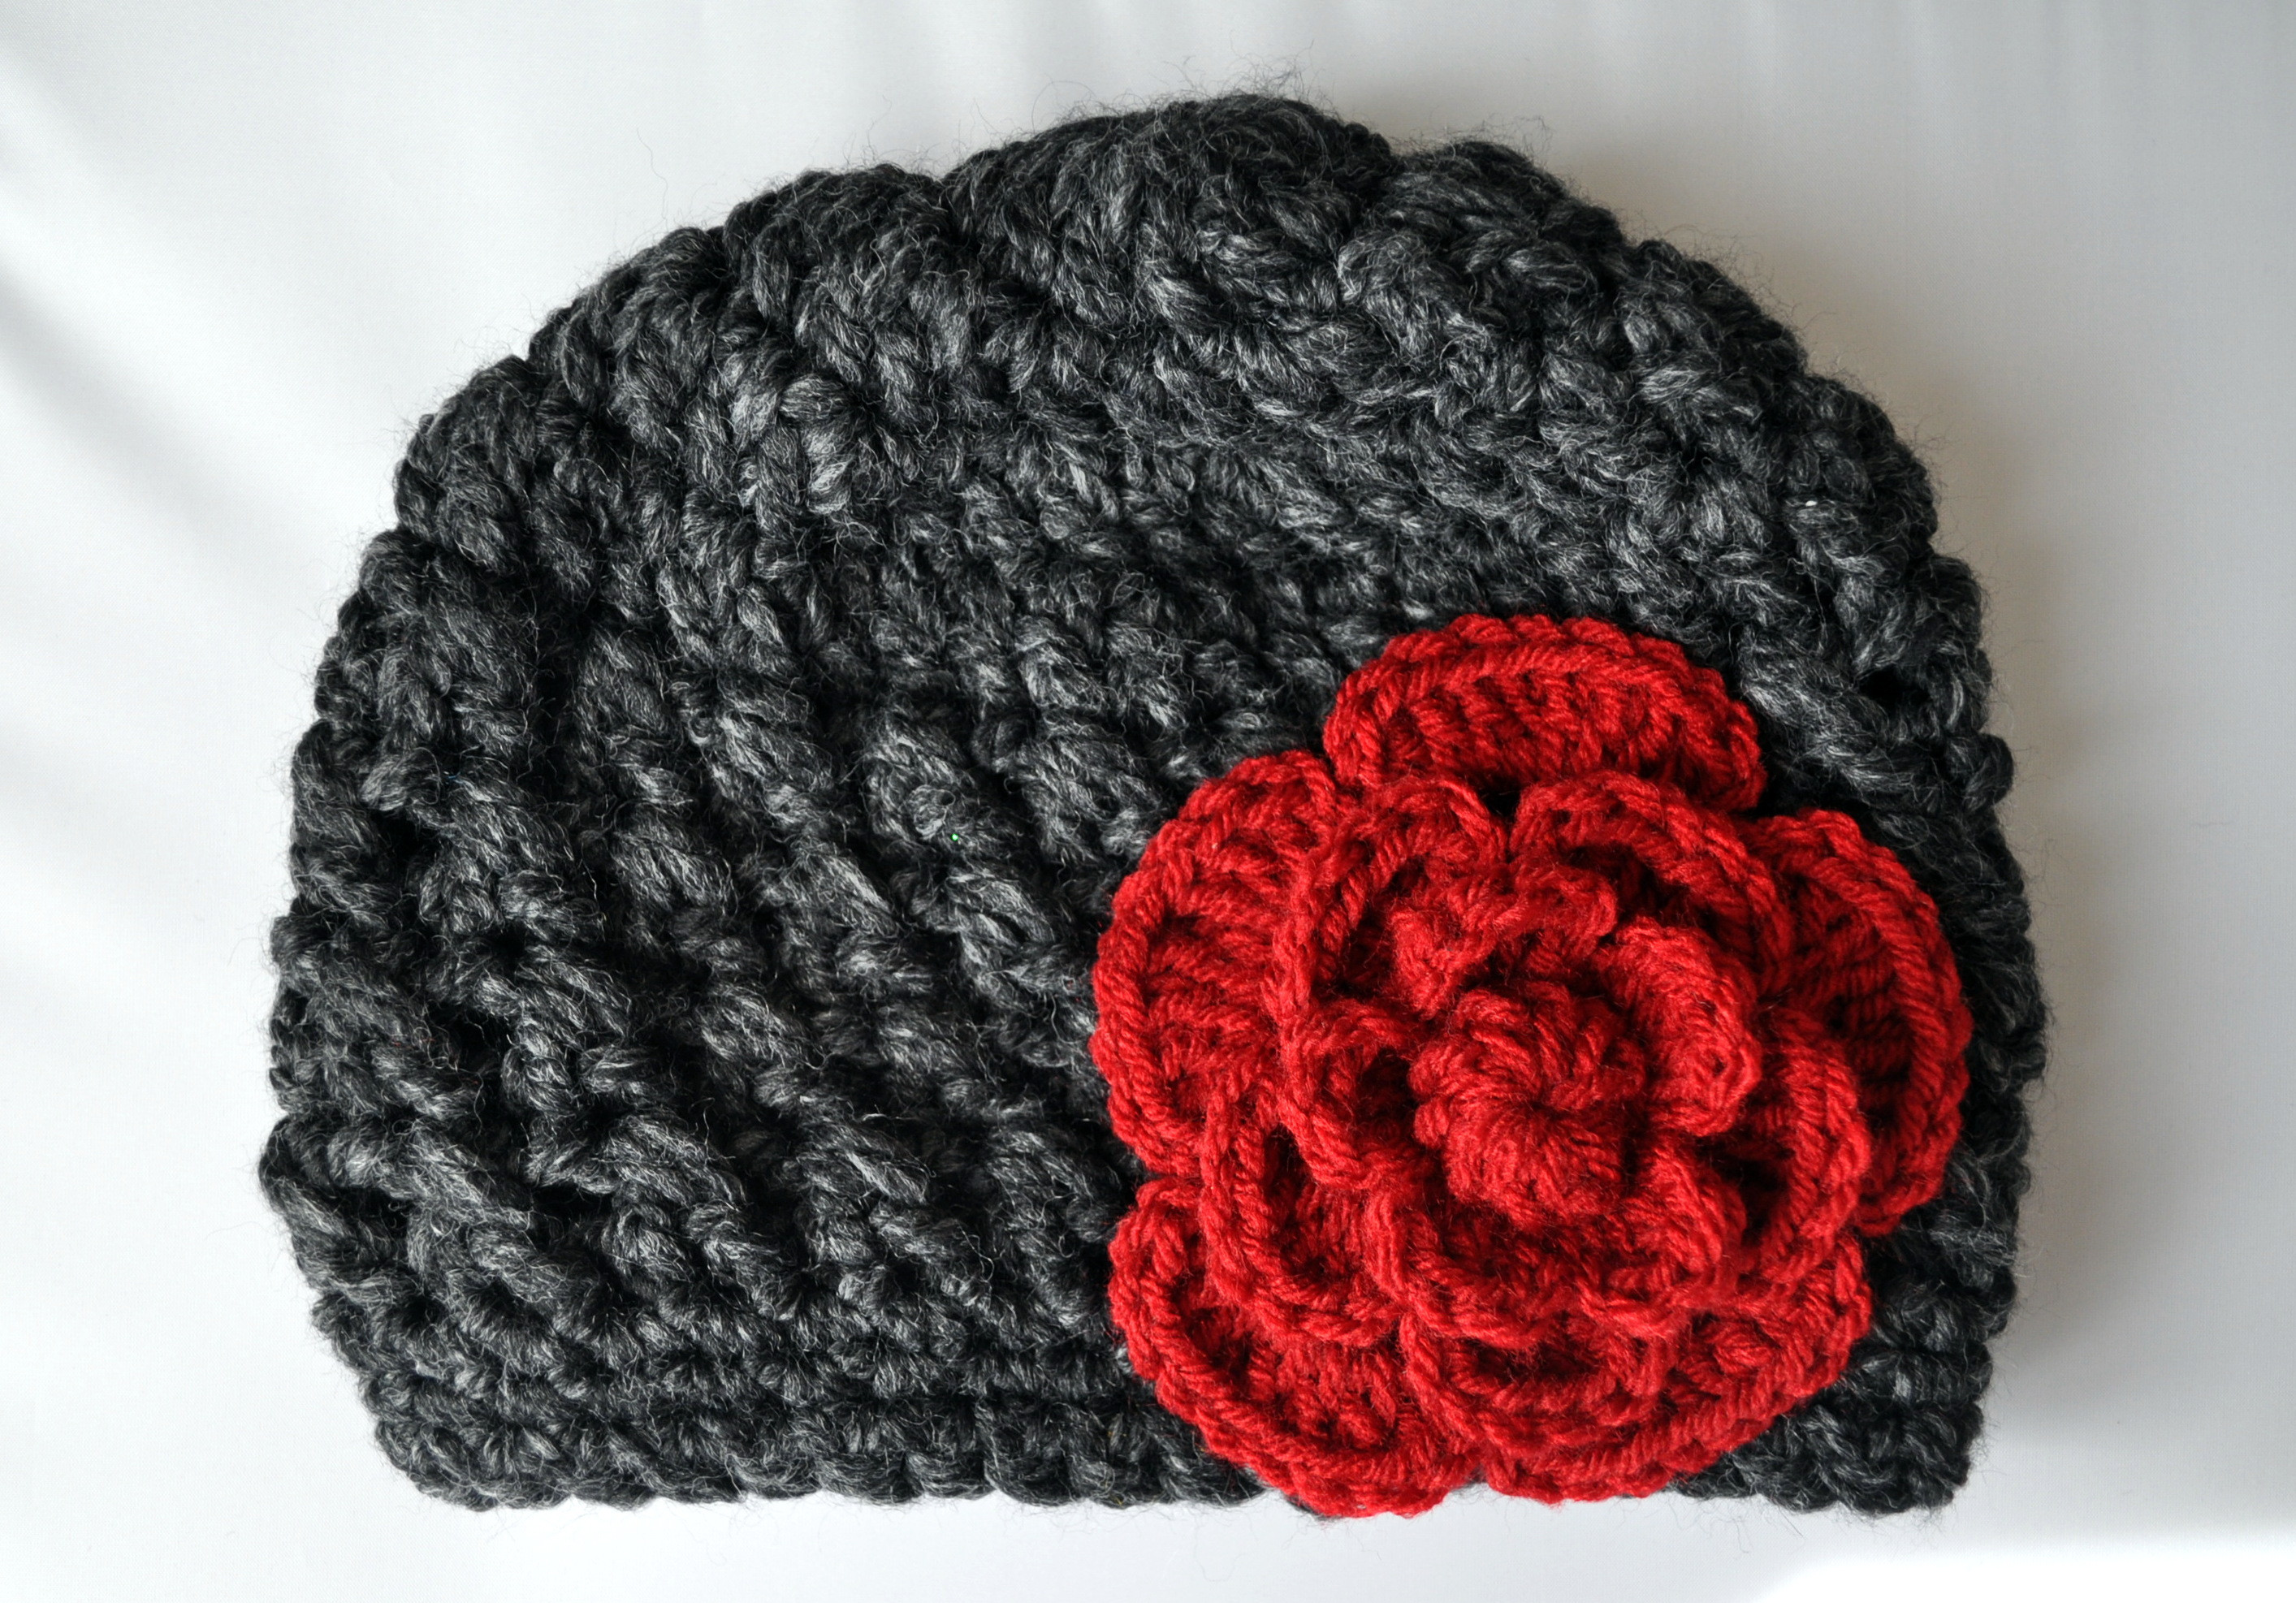 Chunky Yarn Crochet Patterns Best Of Crochet Chunky Flowered Cloche Pattern Of Amazing 46 Photos Chunky Yarn Crochet Patterns